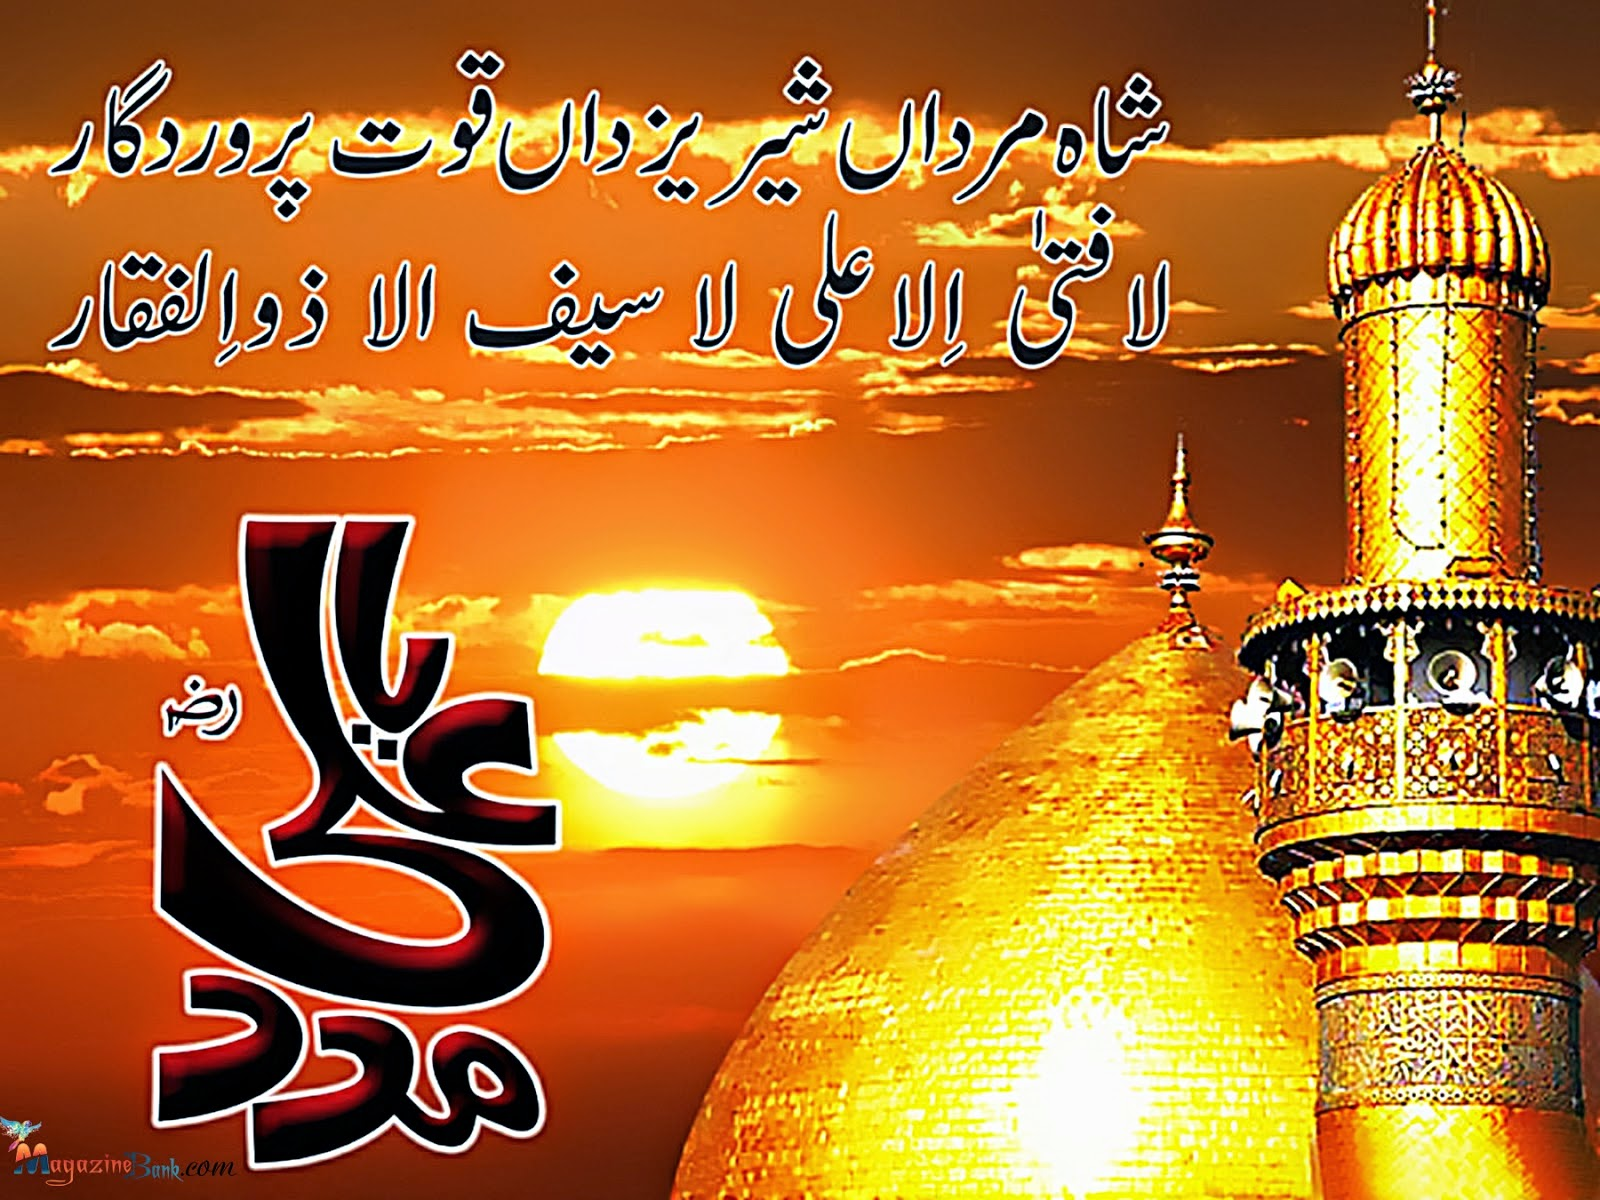 Latest Muharram Islamic Text Sms Messages Quotes In Urdu Urdu Sms